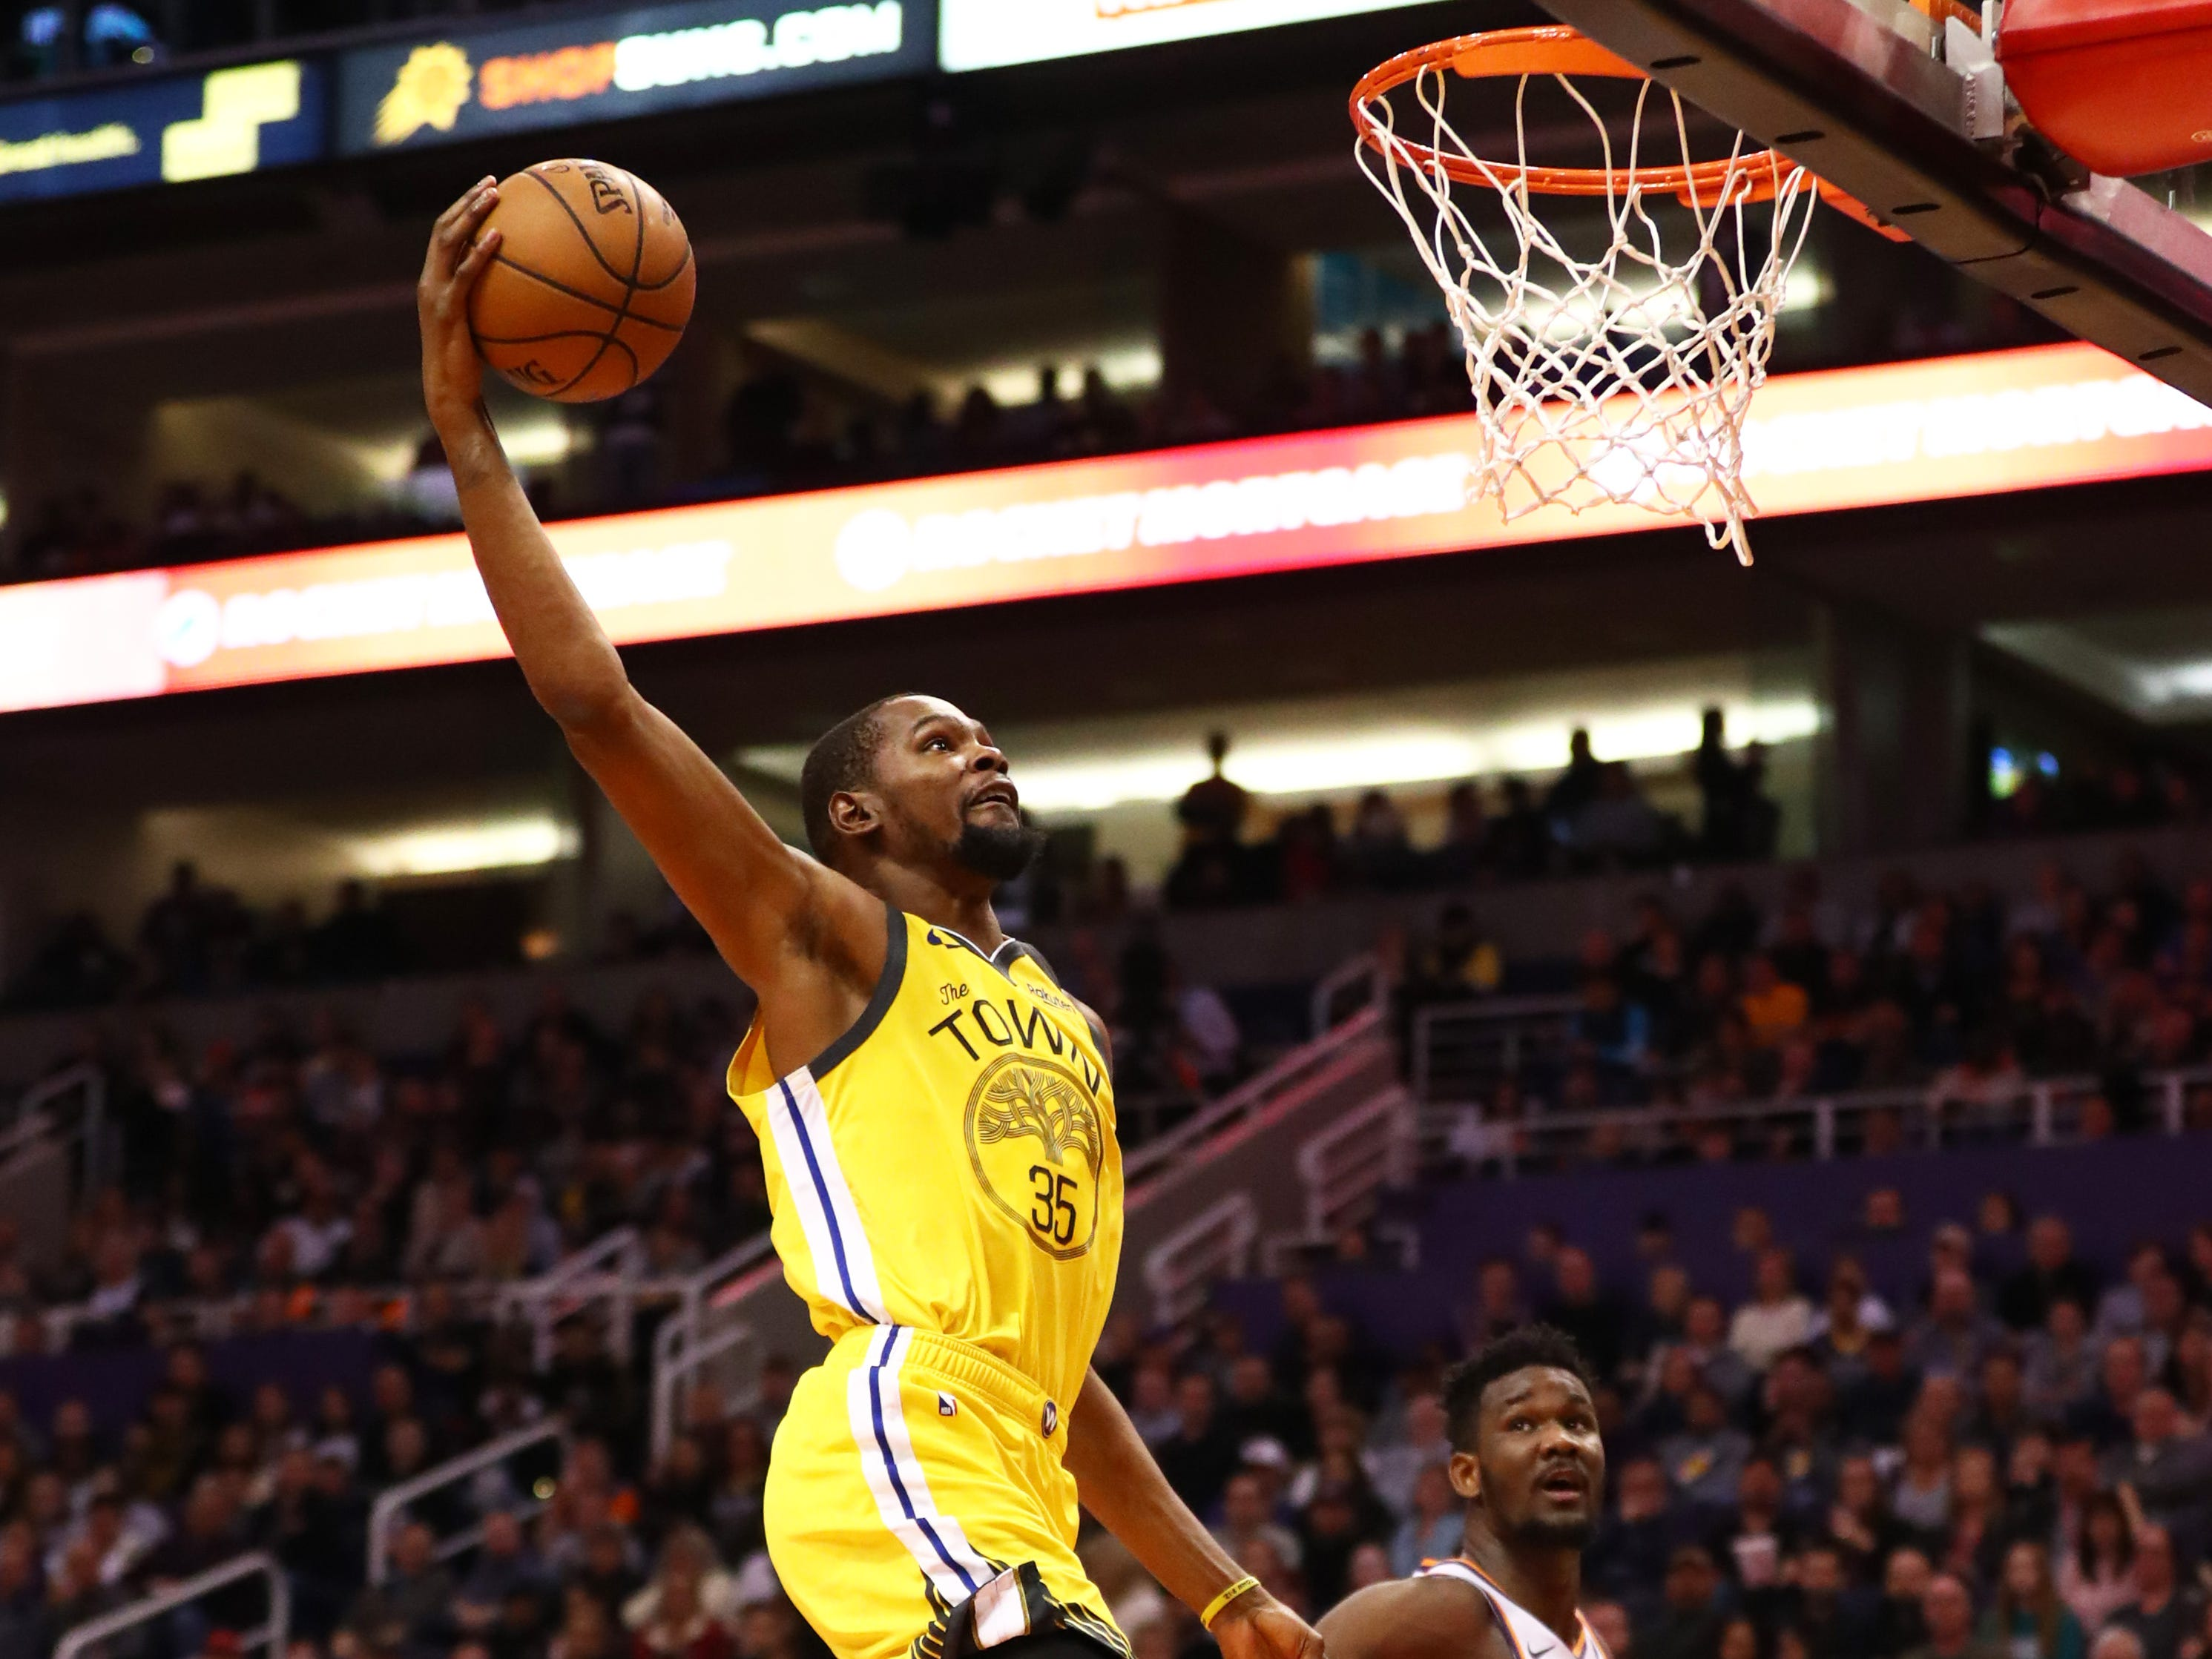 Dec. 31: The Golden State Warriors' Kevin Durant  slam dunks against the Phoenix Suns at Talking Stick Resort Arena.